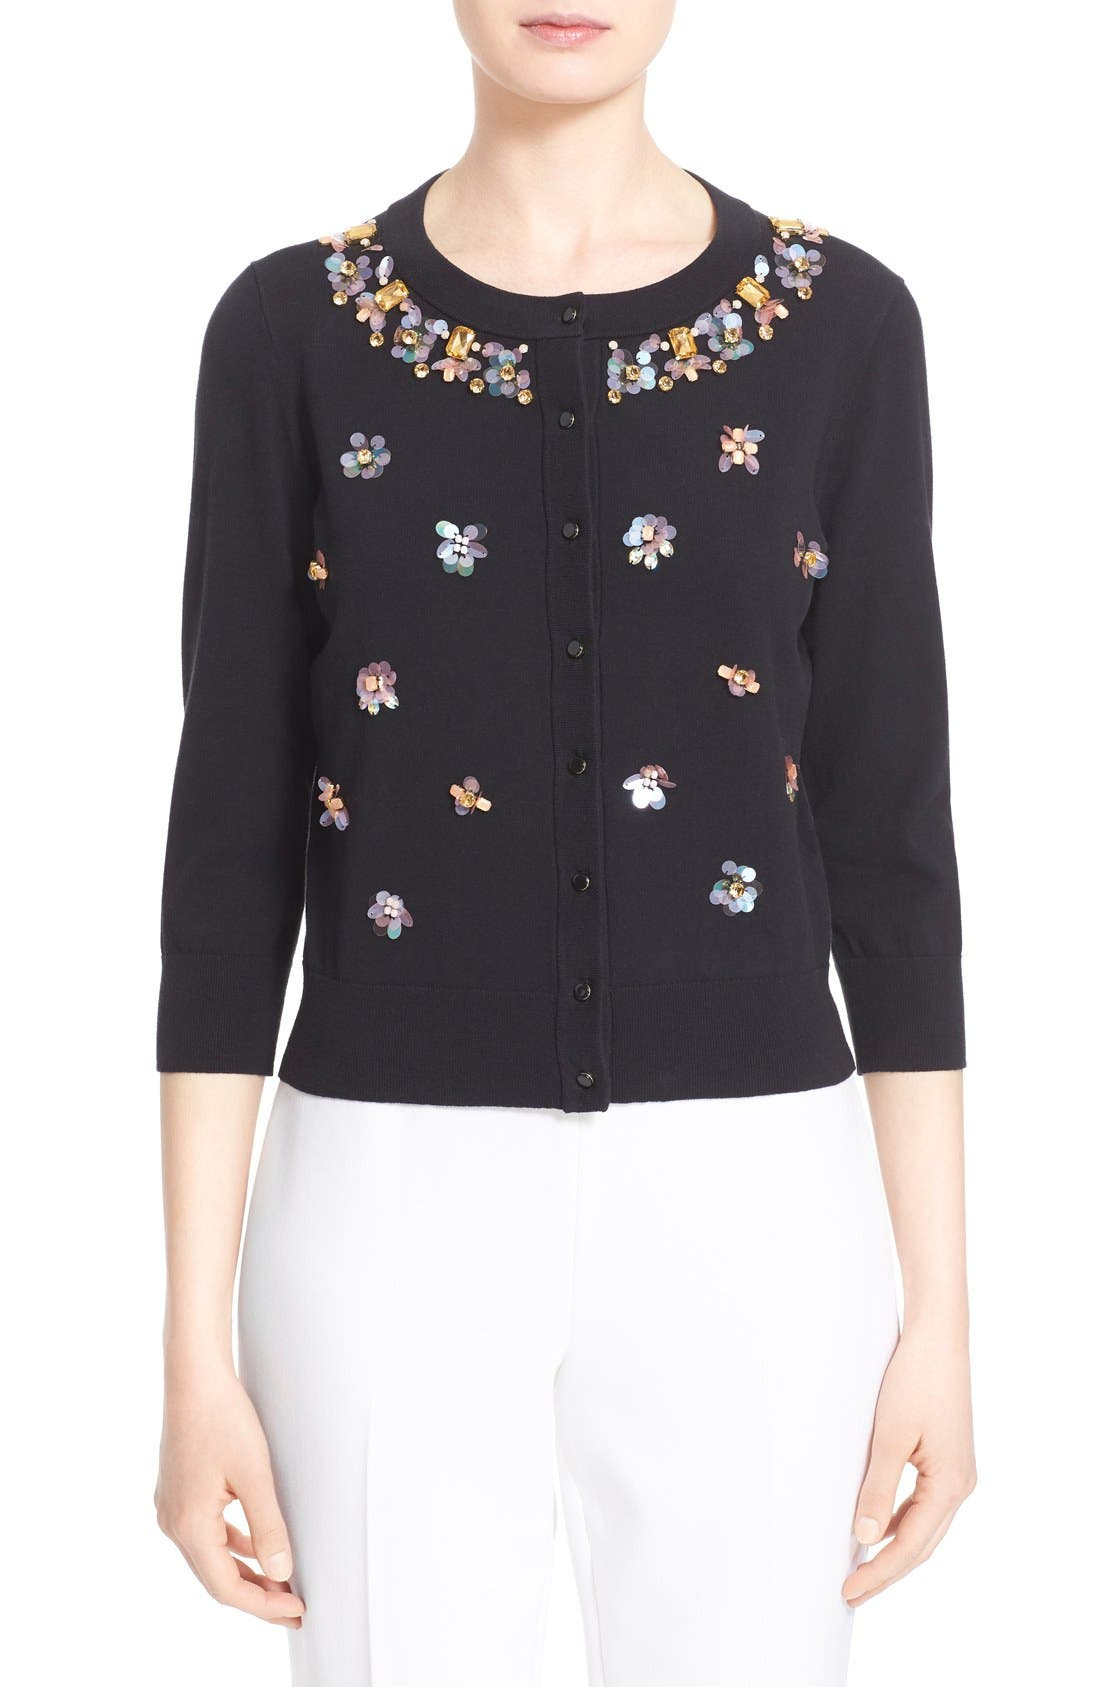 Alternate Image 1 Selected - kate spade new york embellished cardigan